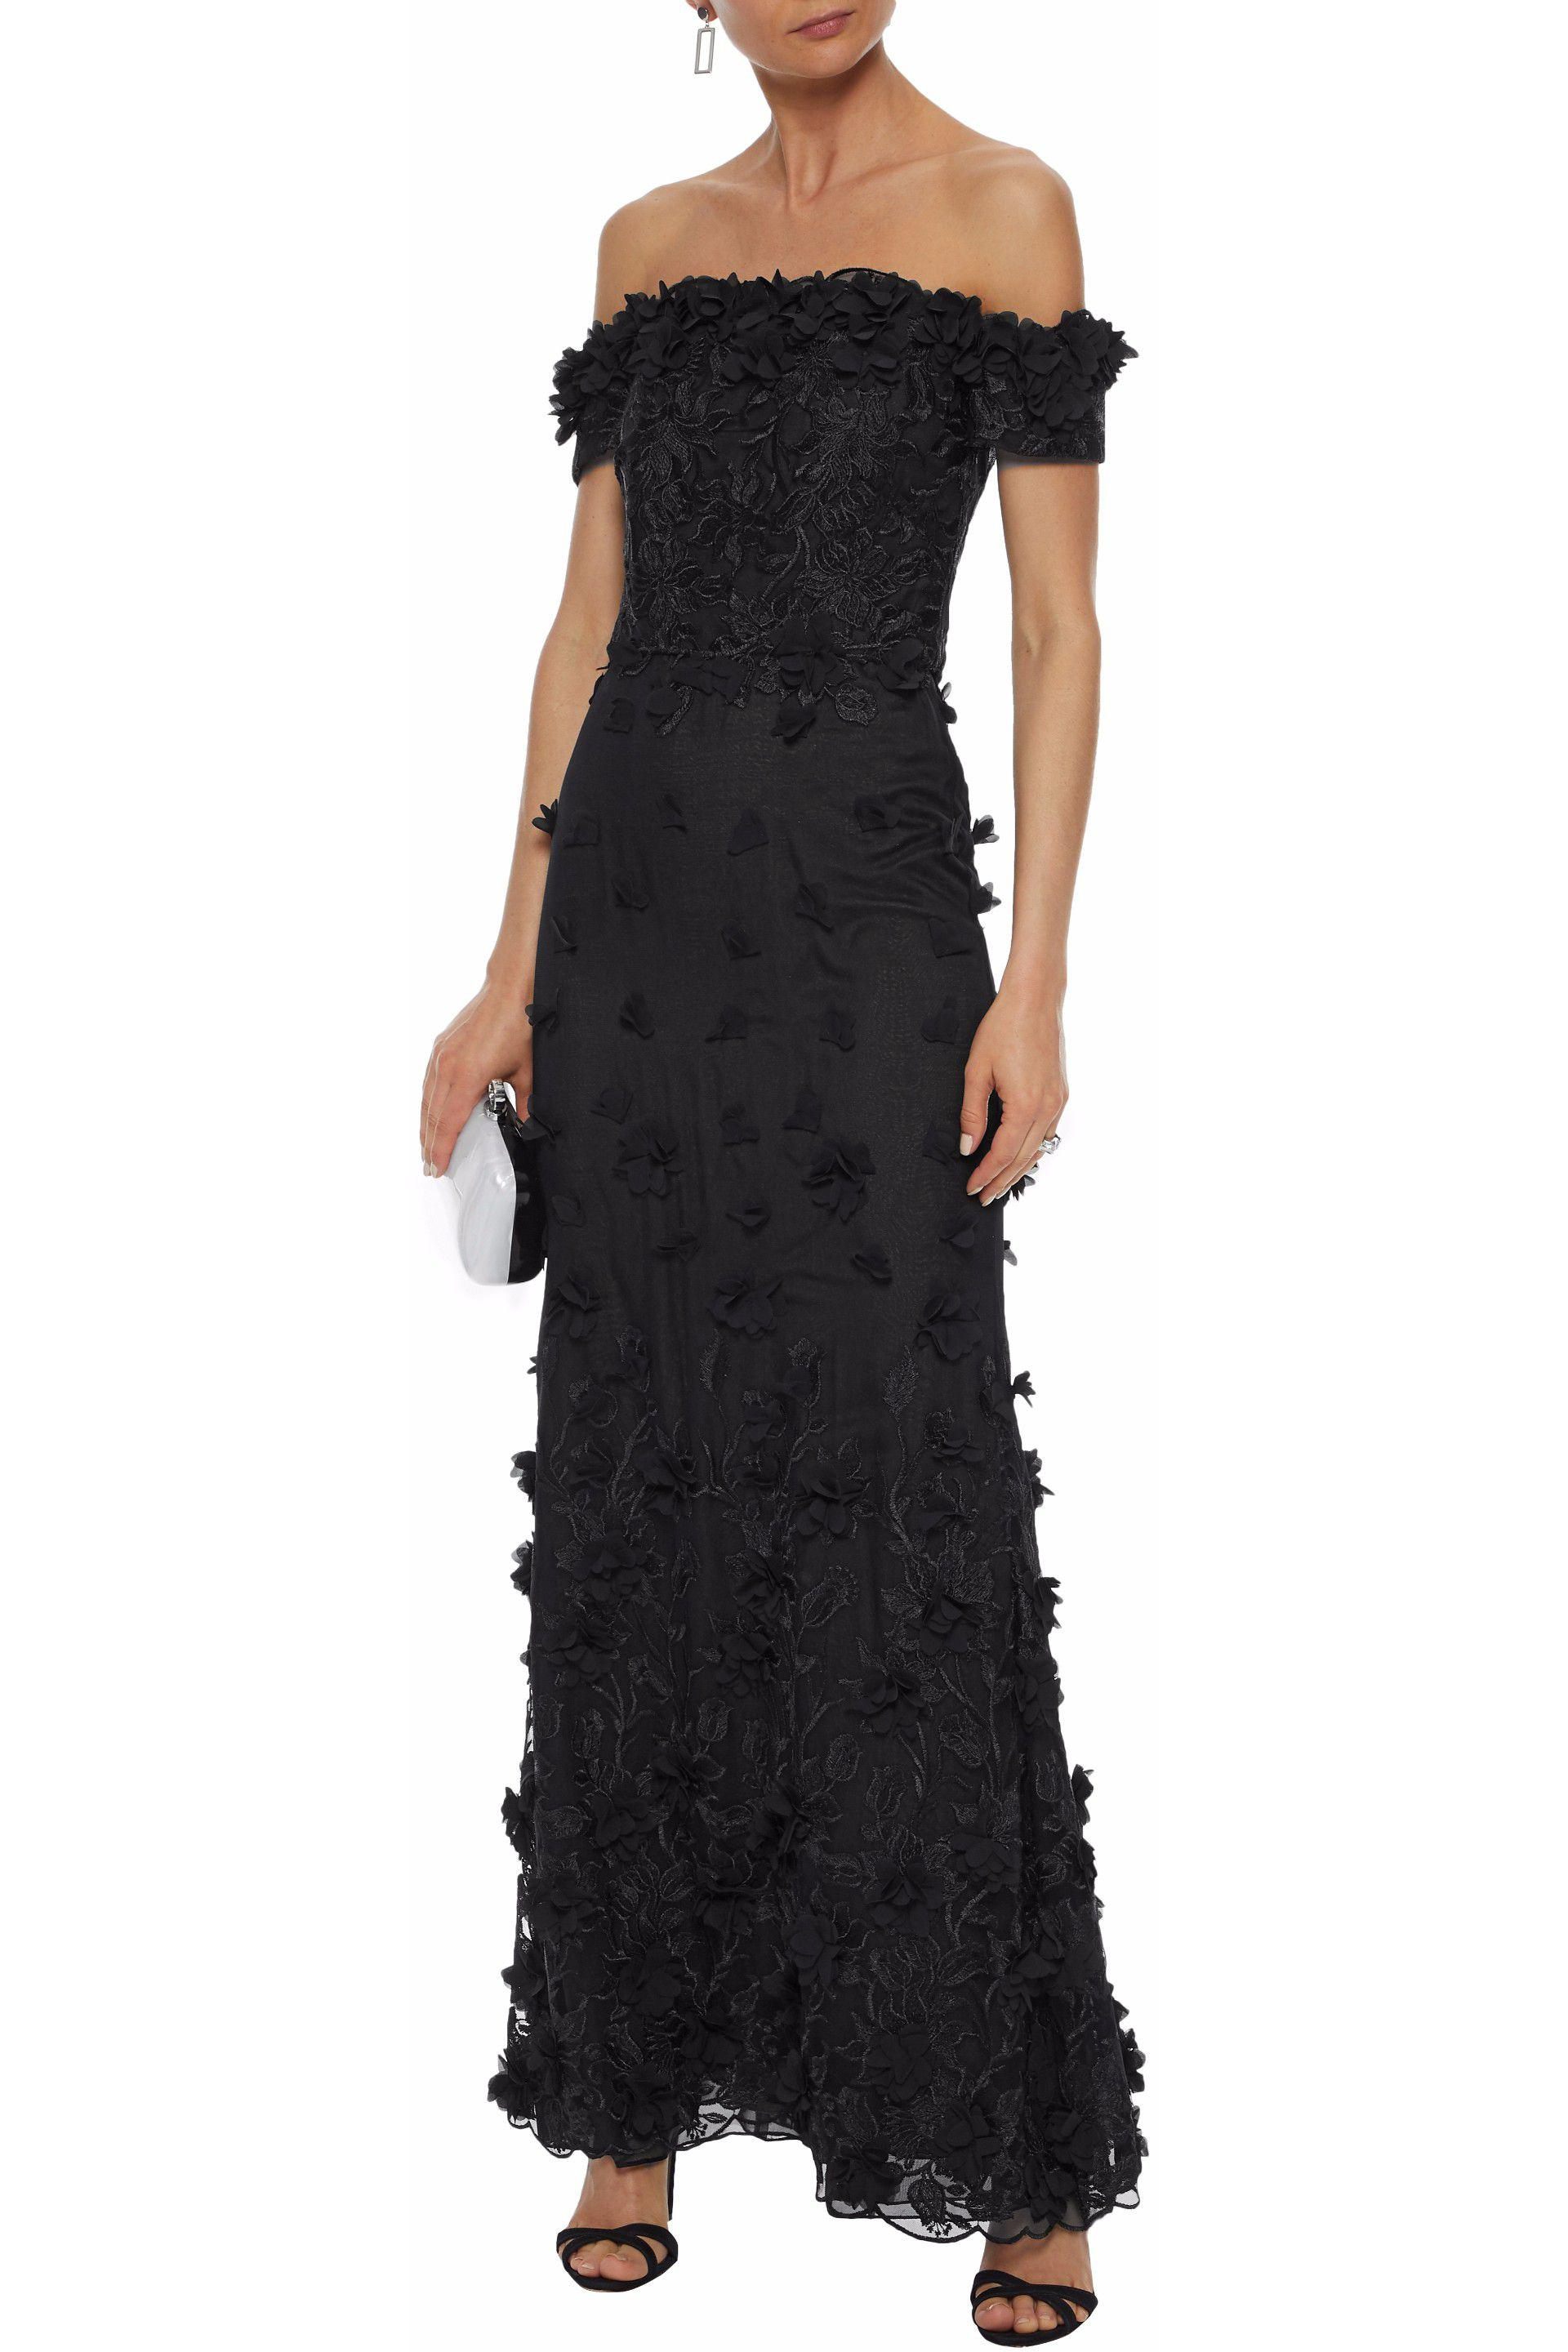 Off-the-shoulder Embellished Corded Lace And Tulle Gown - Black Marchesa Discount Huge Surprise UuqFZ20Dk4